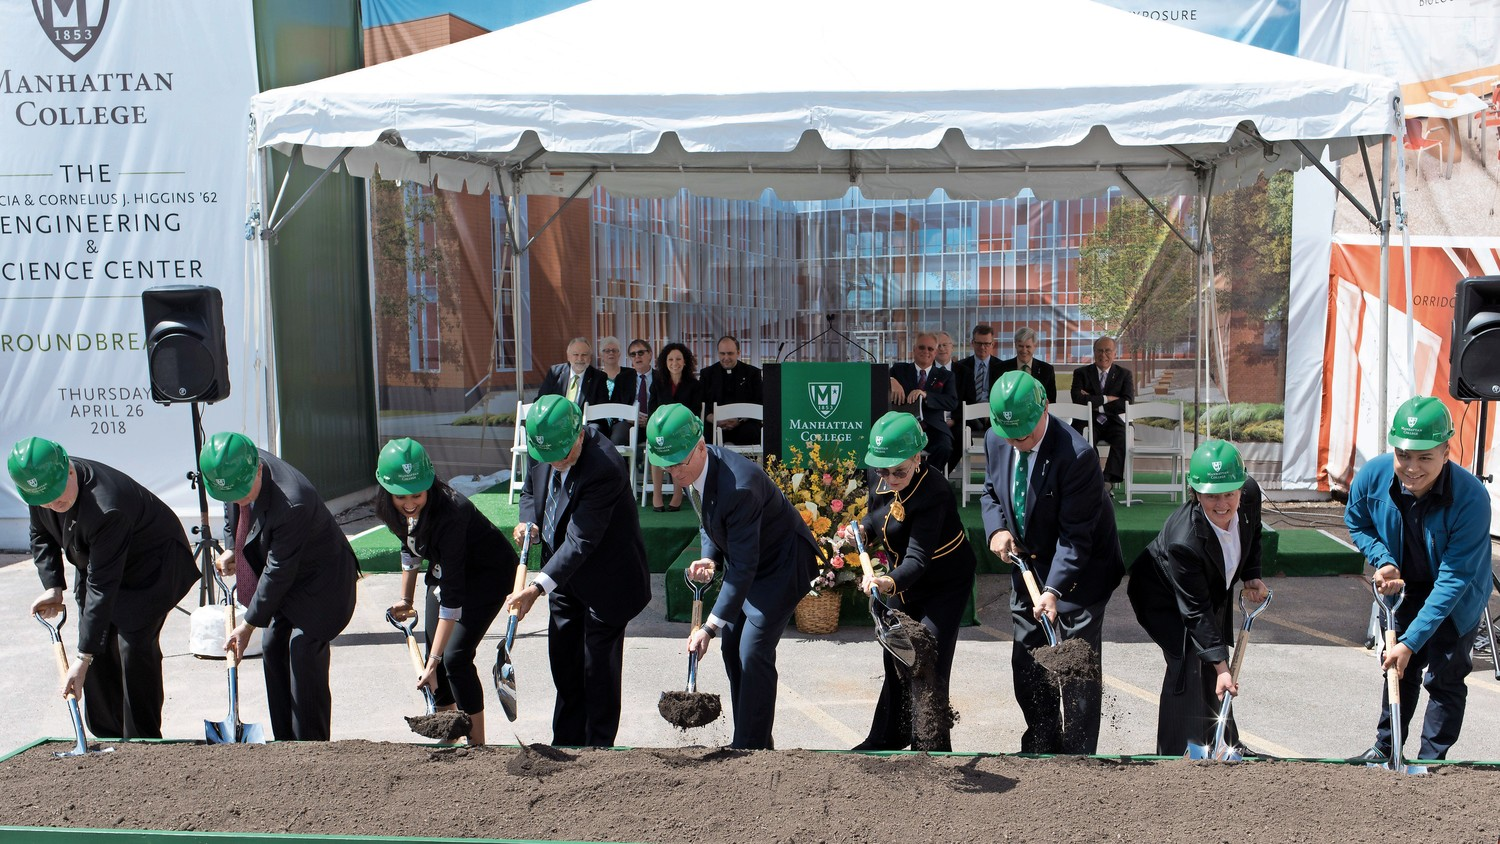 Manhattan College administrators, alumni and donors break ground by digging ceremonial soil at a groundbreaking ceremony for the Patricia and Cornelius J. Higgins '62 Engineering and Science Center. The new center is expected to be completed in 2020.